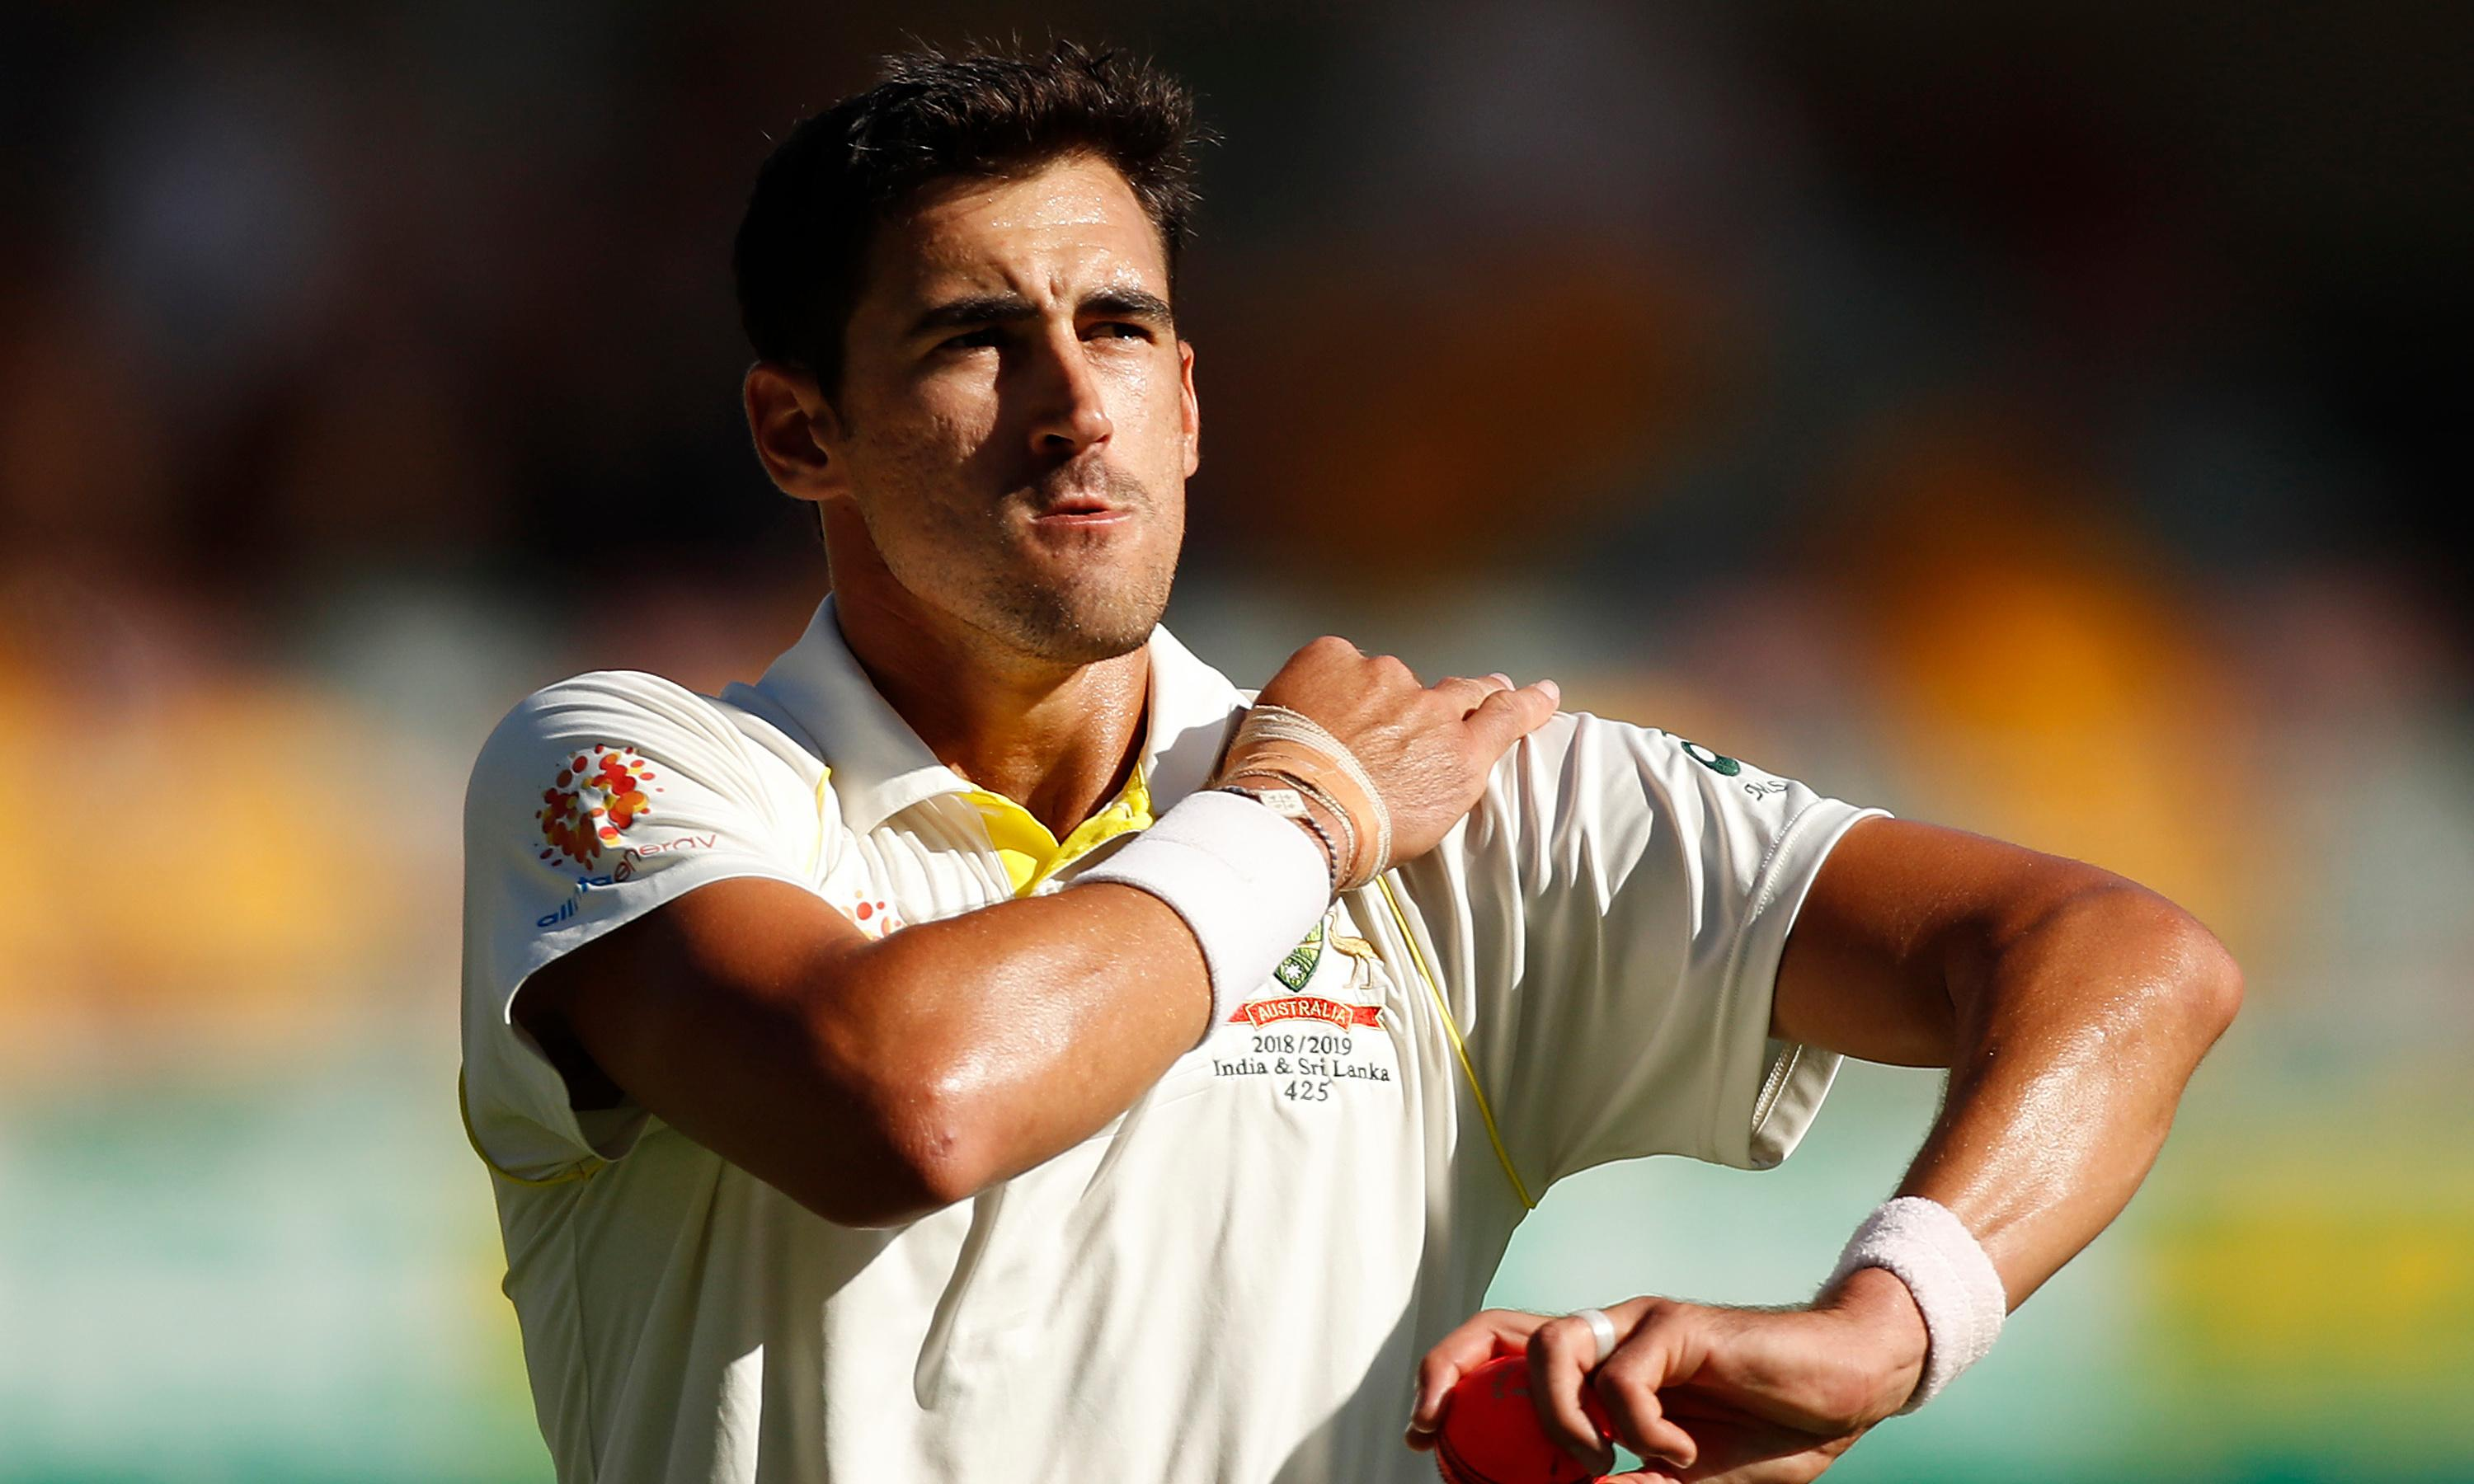 Mitchell Starc sues insurers for $1.5m over missed IPL season